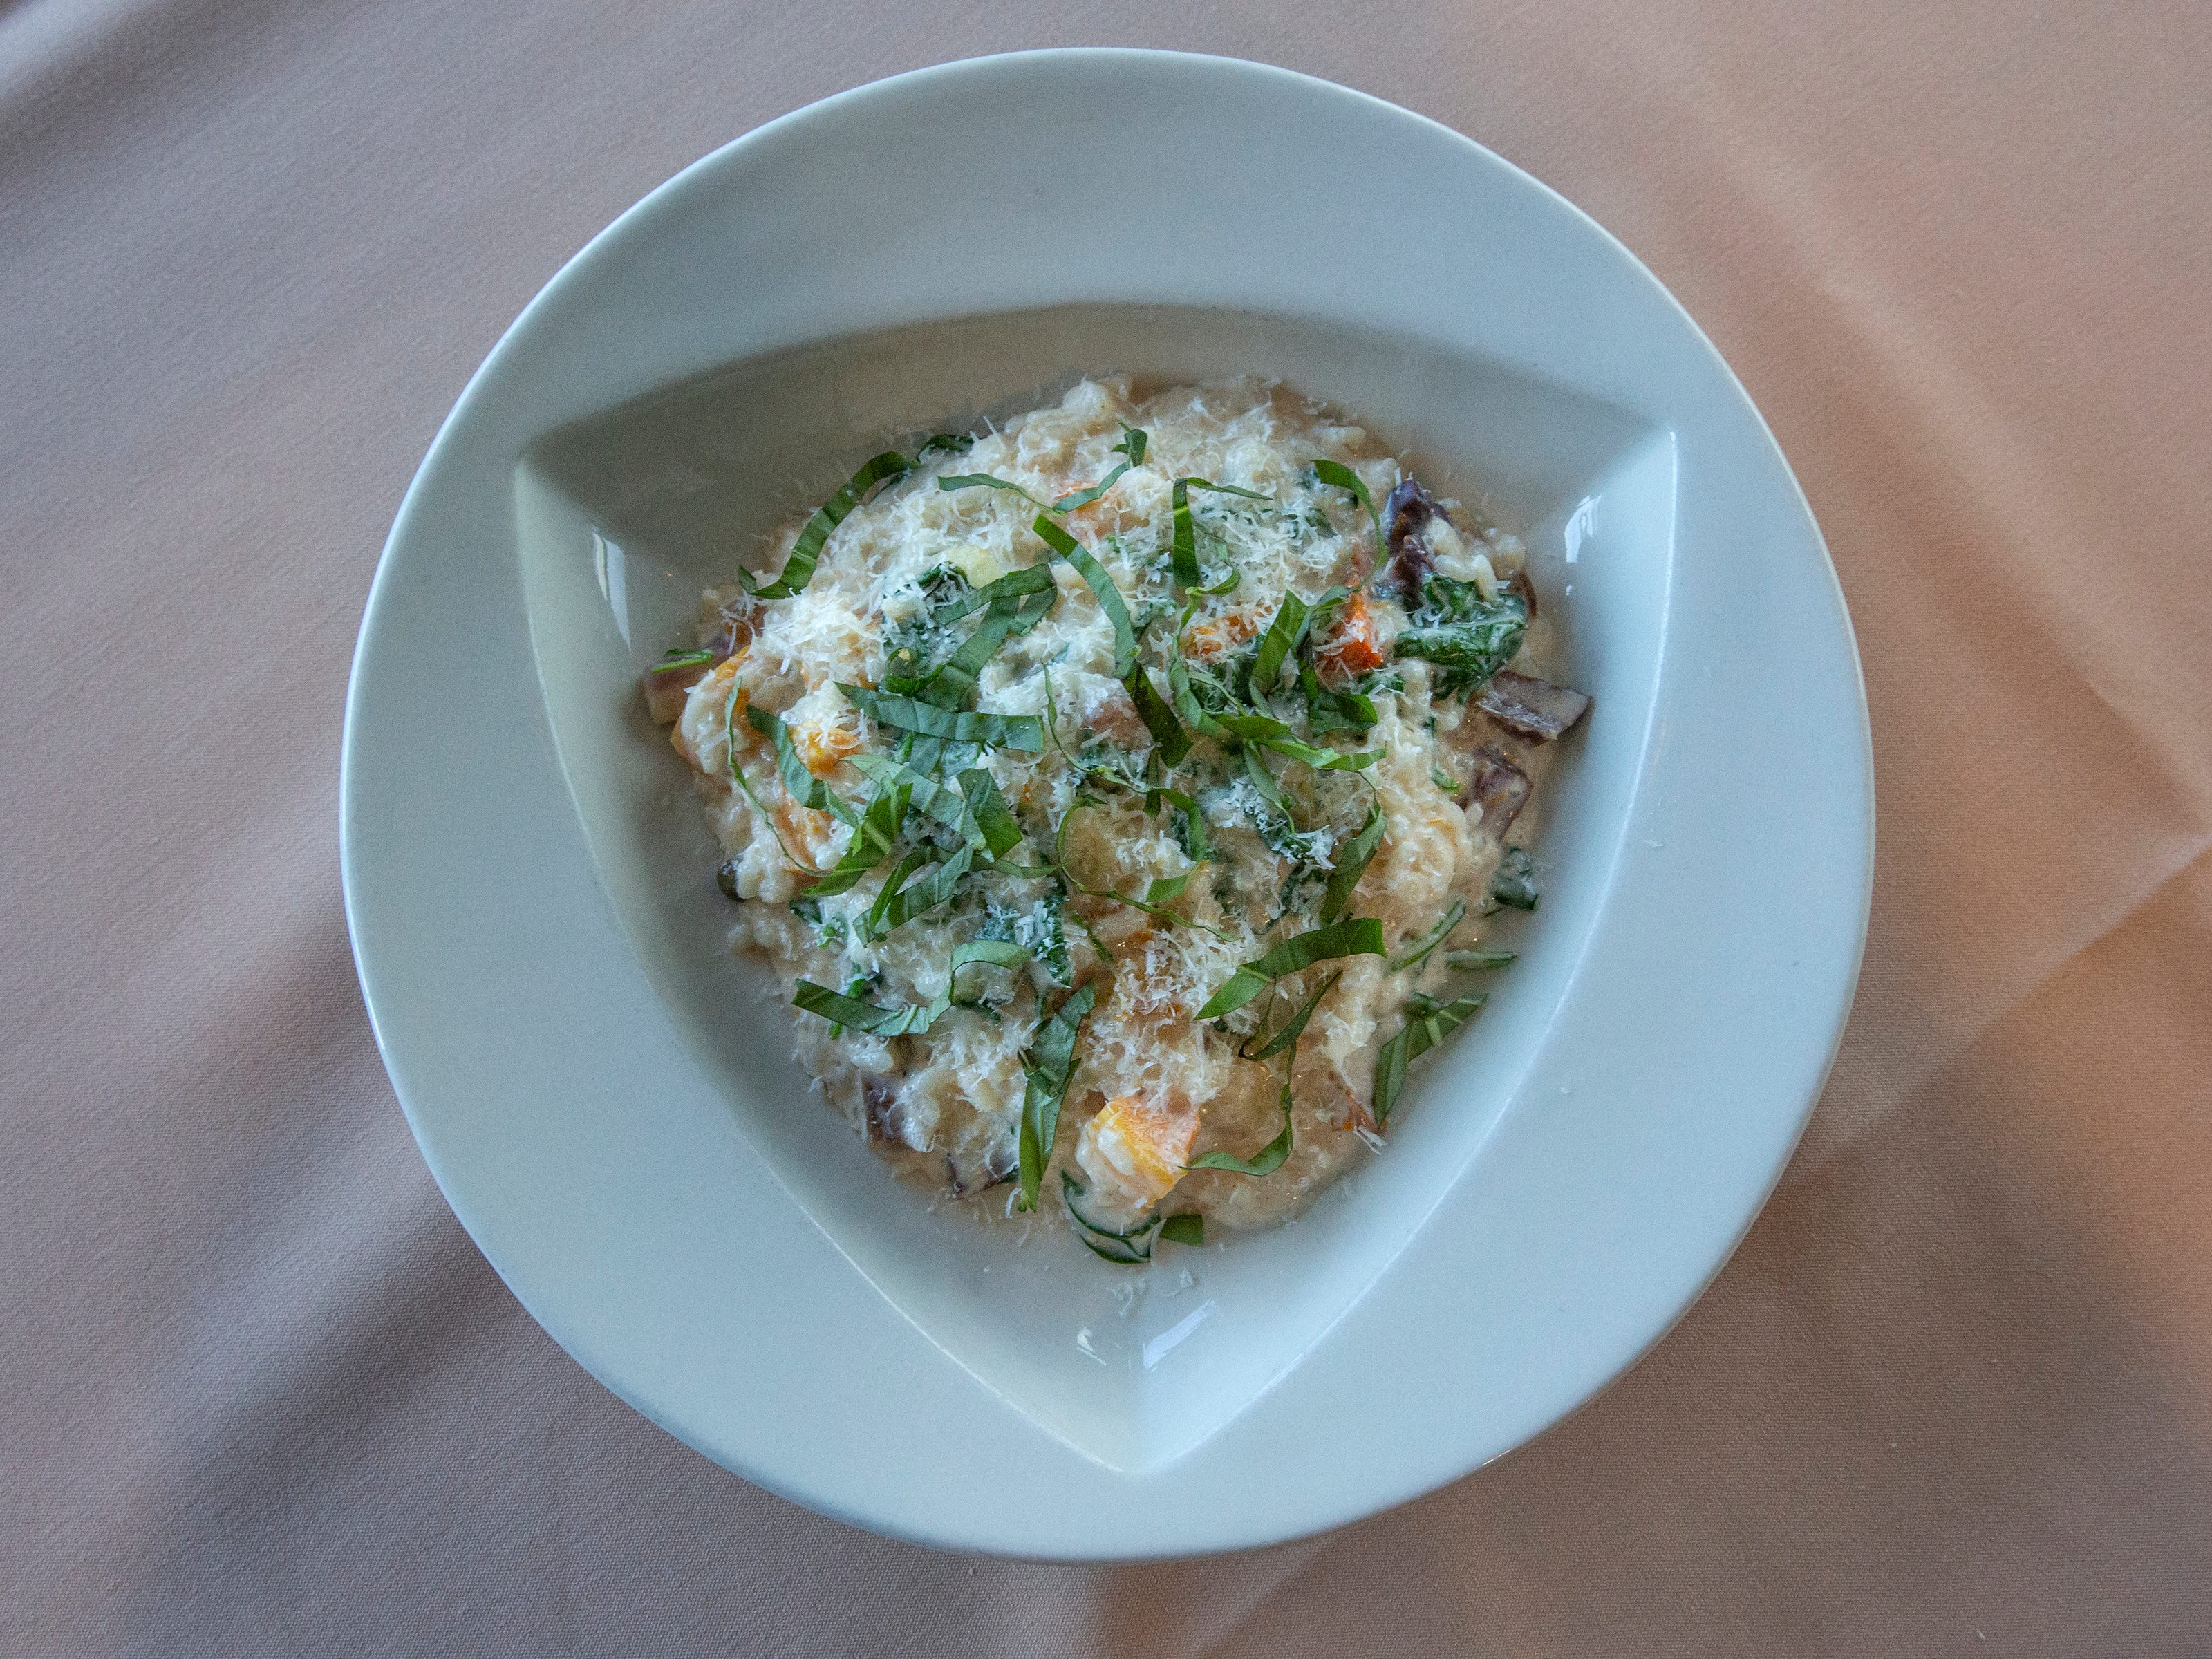 The Vegetable Risotto at Anoosh Bistro. March 28, 2019.